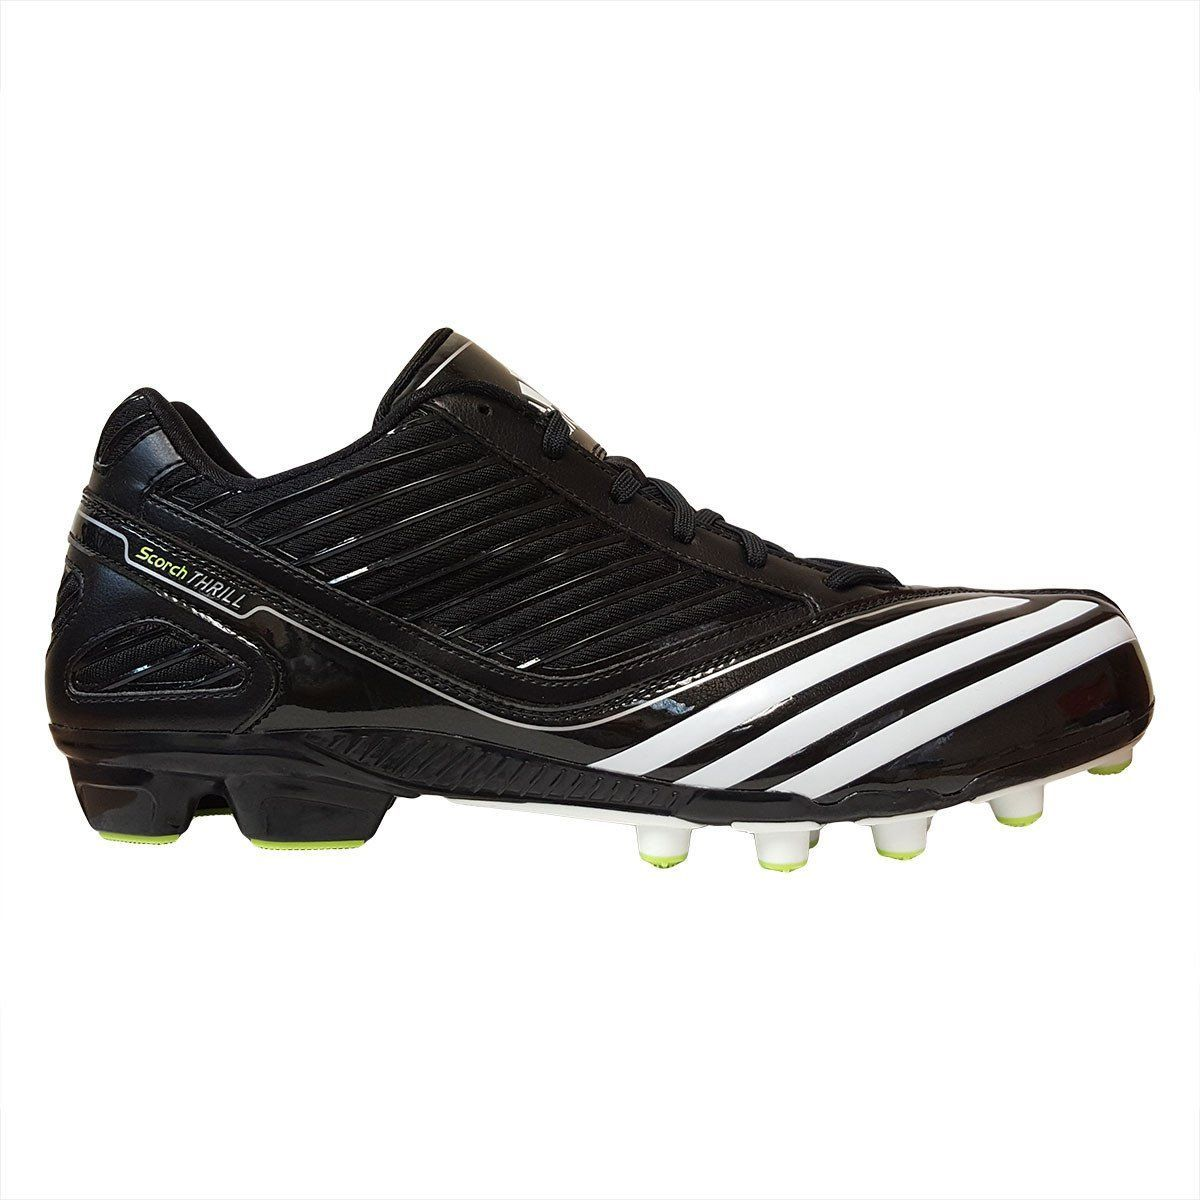 Adidas scorch thrill field turf low football cleats with